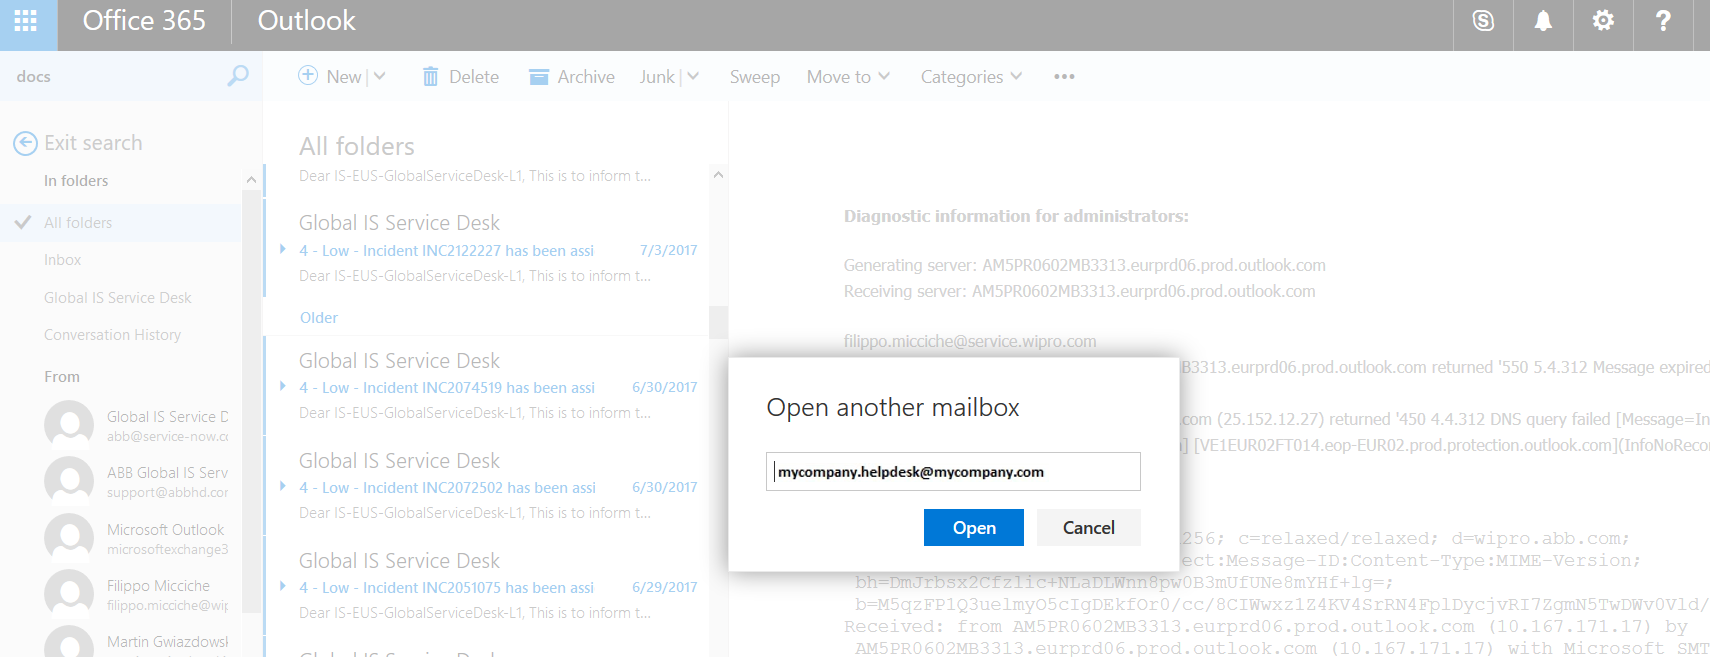 Insert the shared mailbox email address